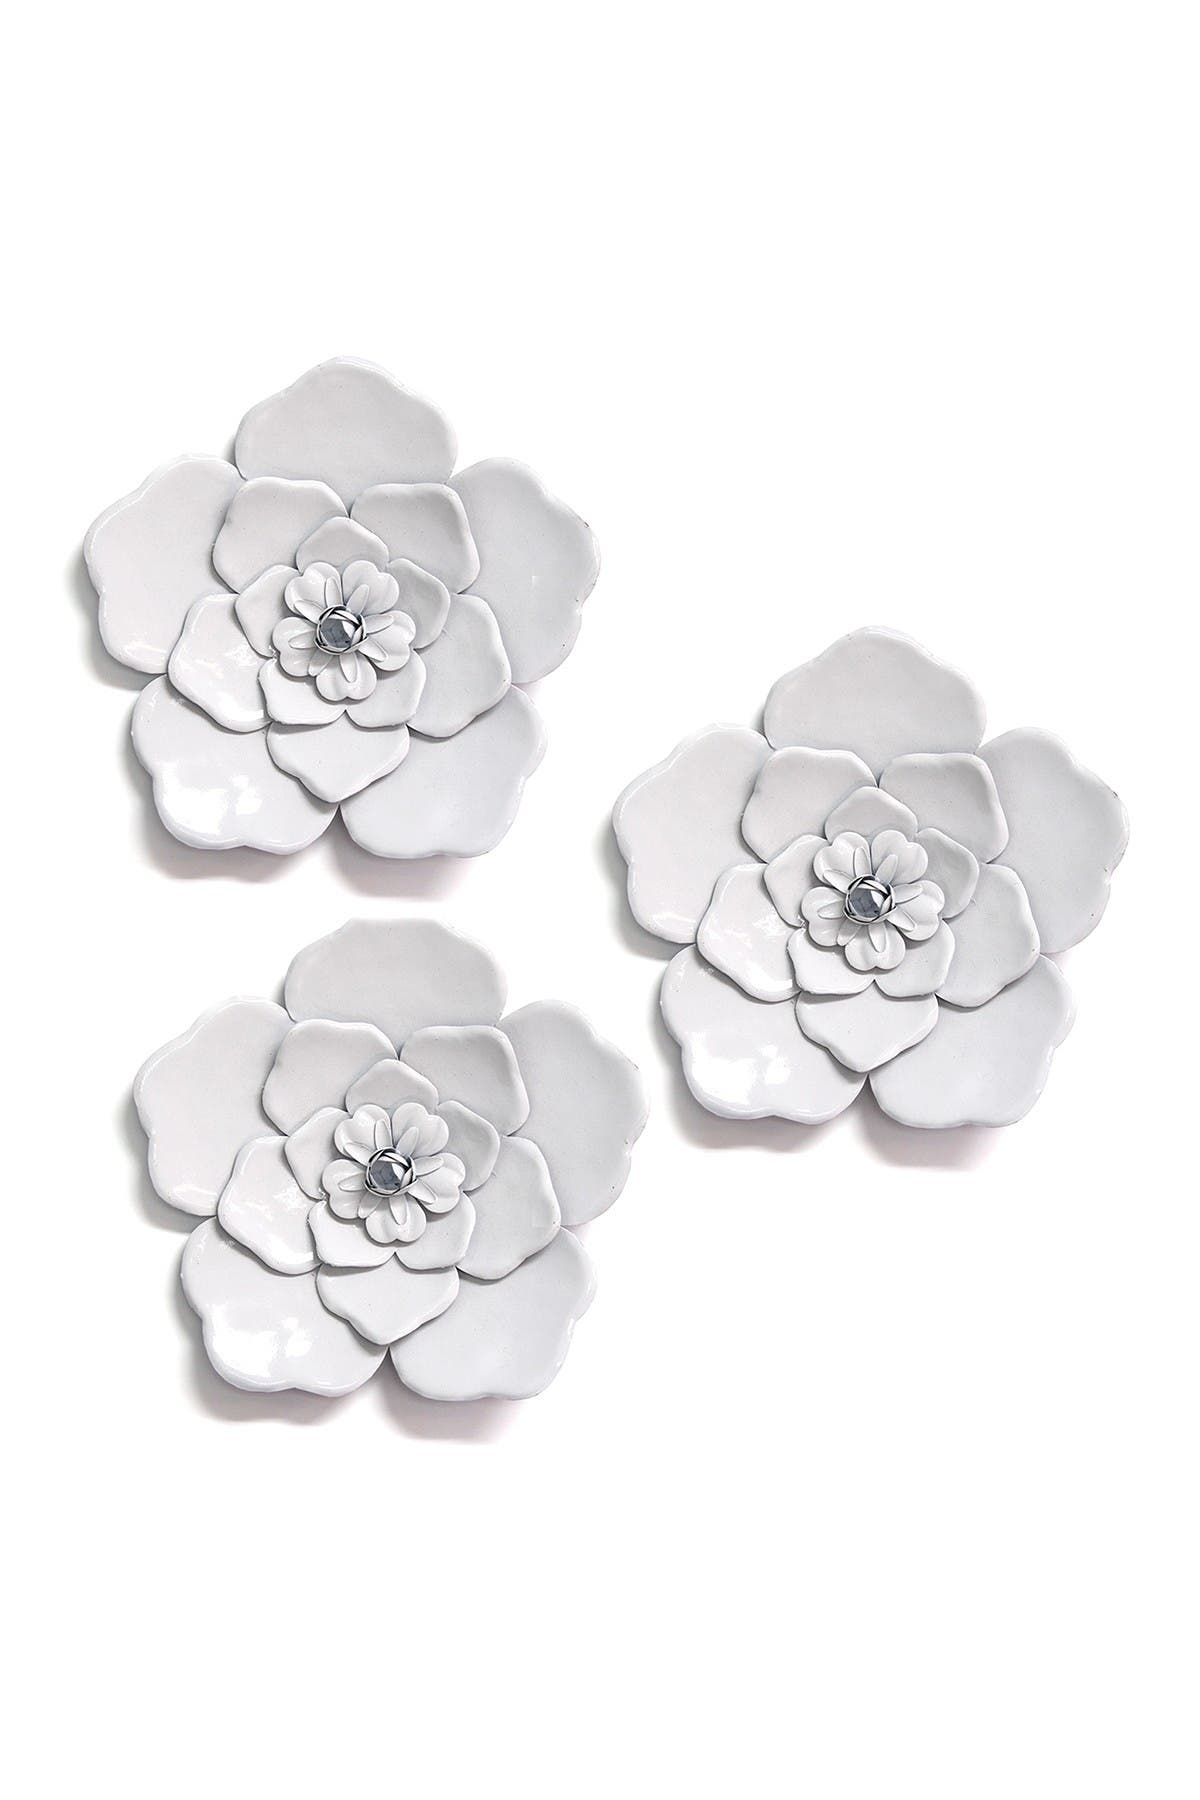 Image of Stratton Home White Metal Wall Flowers - Set of 3